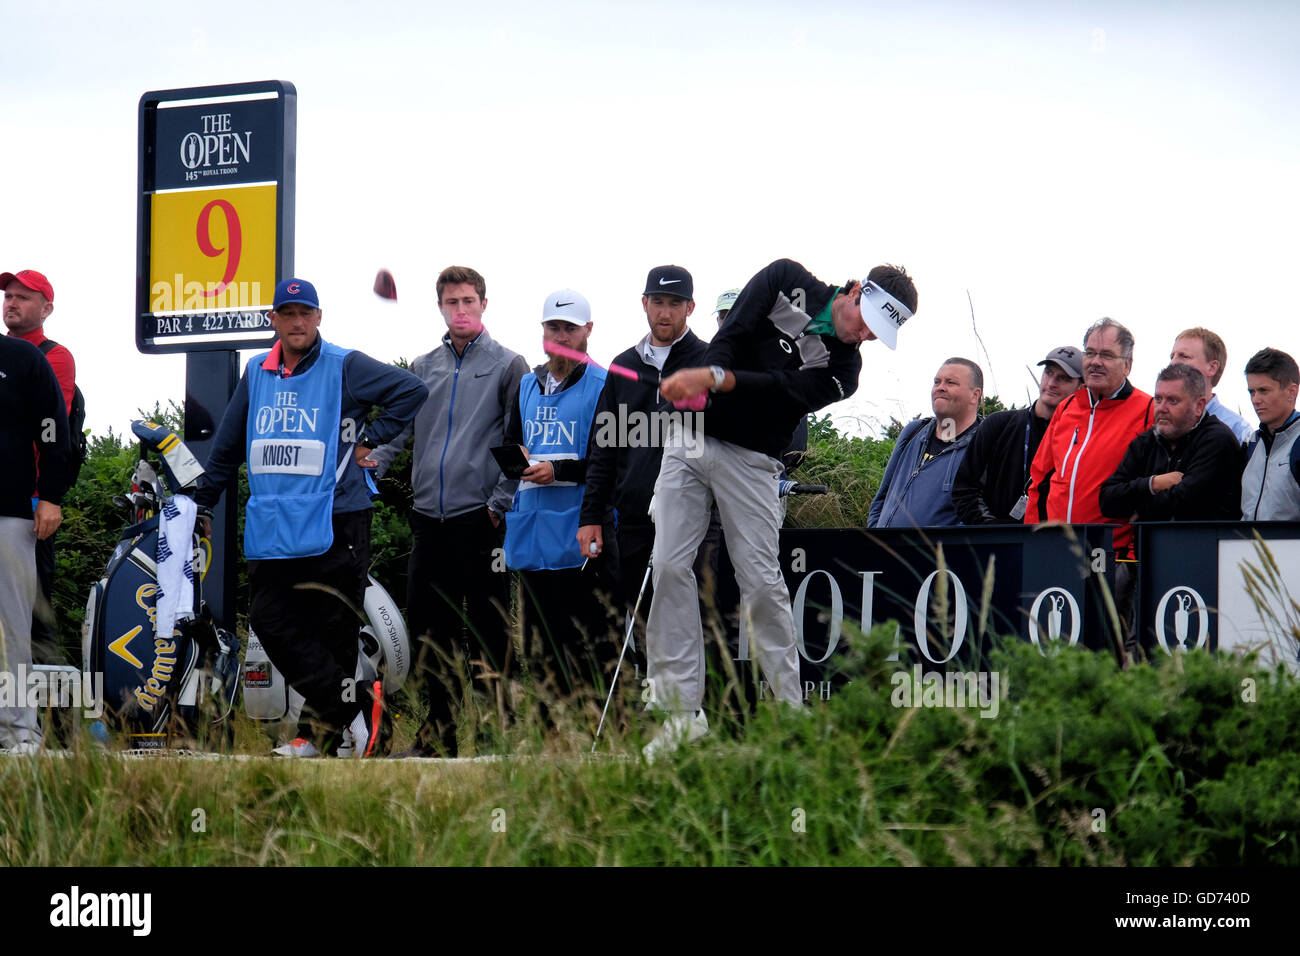 Bubba Watson hits his tee shot on the 9th hole at Royal Troon during practice for The 2016 Open Golf Championship. - Stock Image